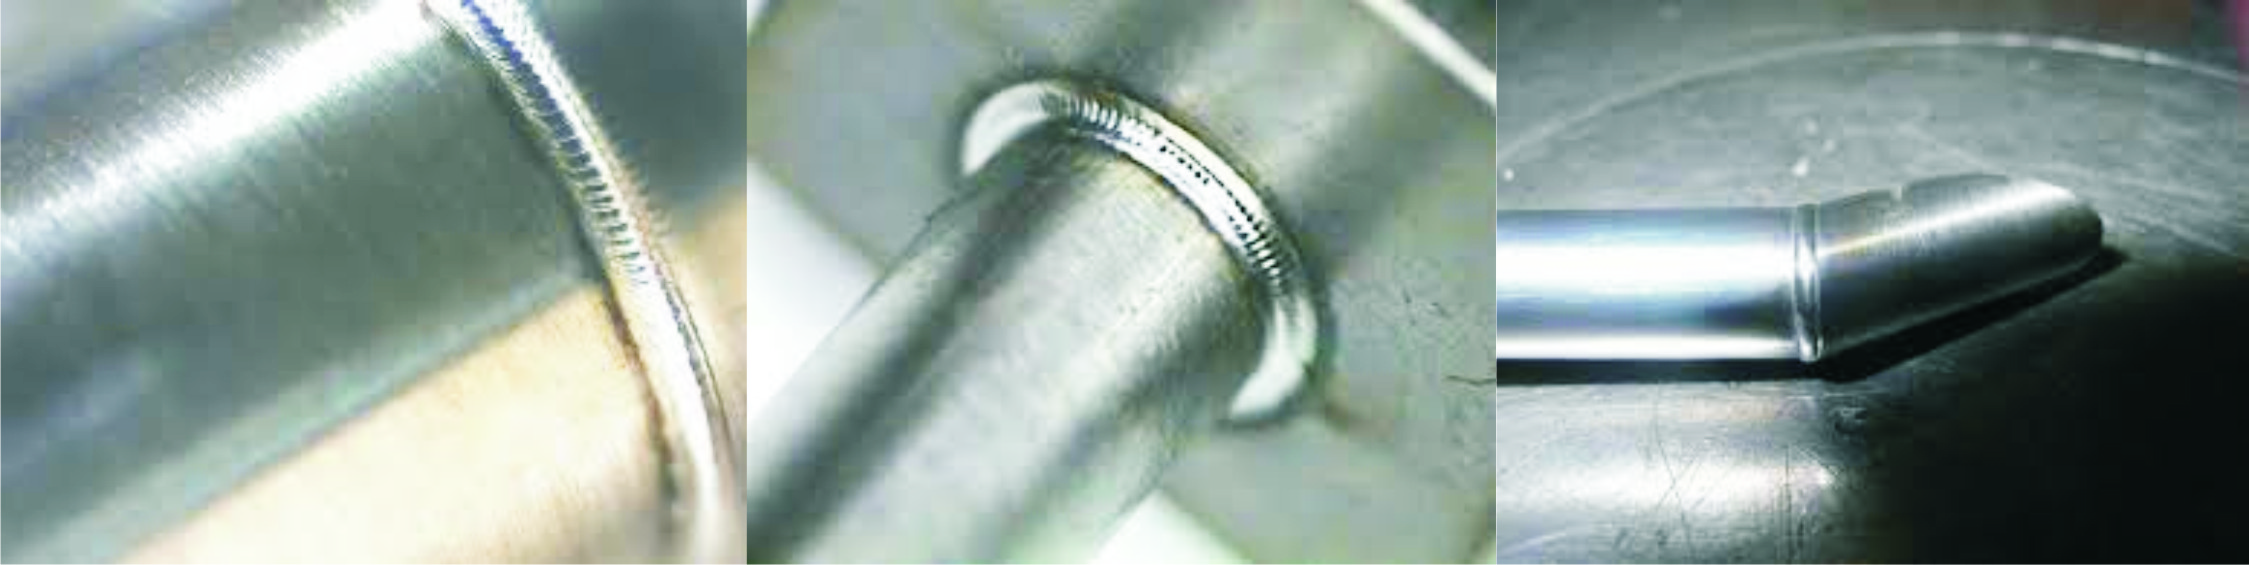 Micro Laser Welding close up